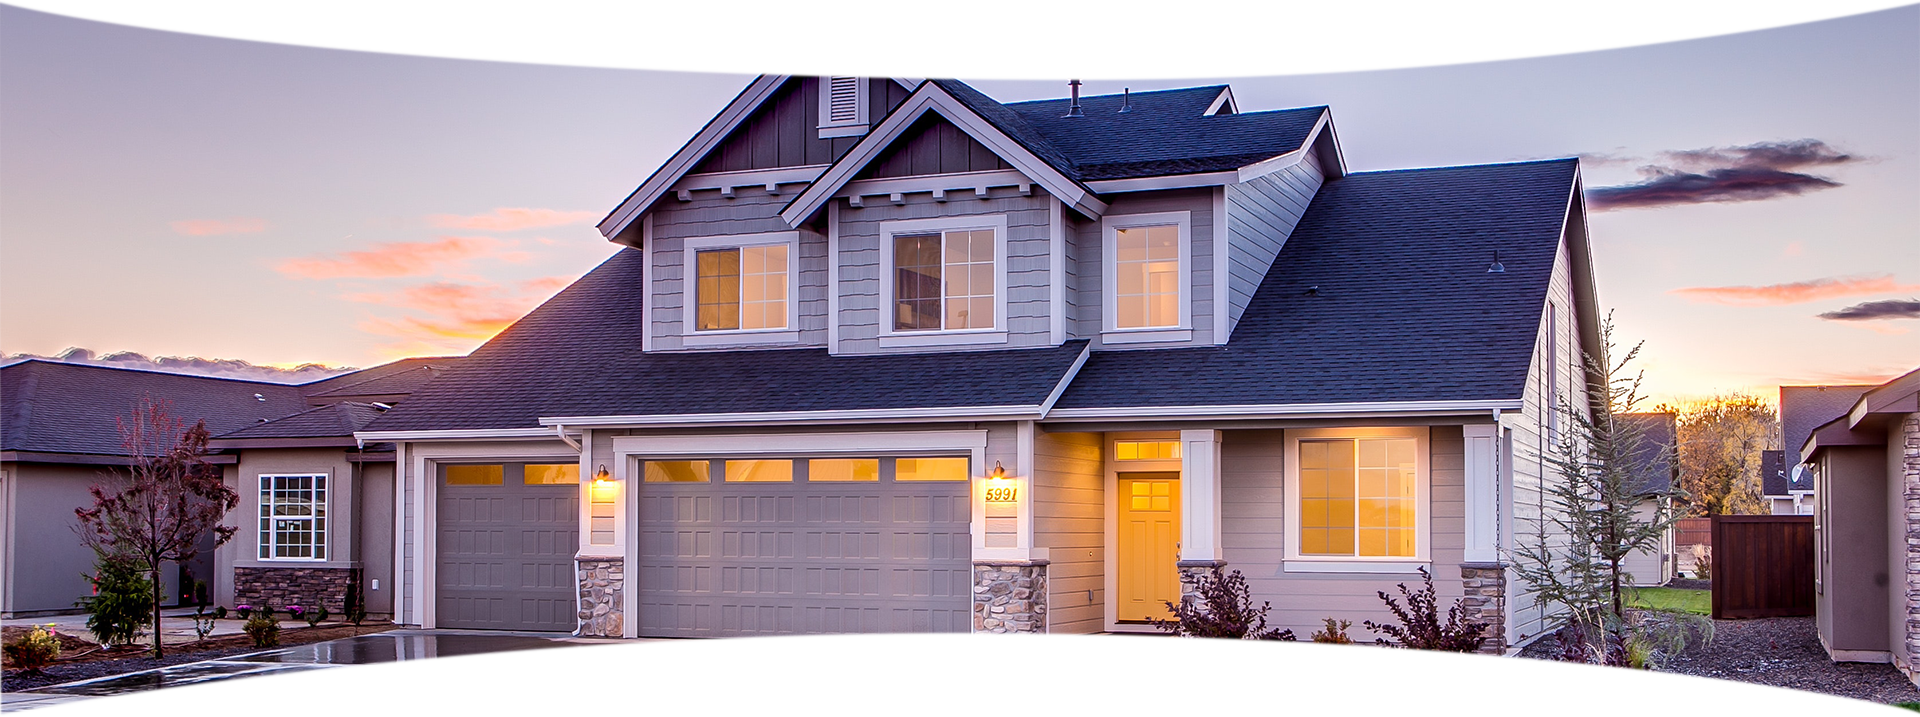 Insured Residential Painting Contractor